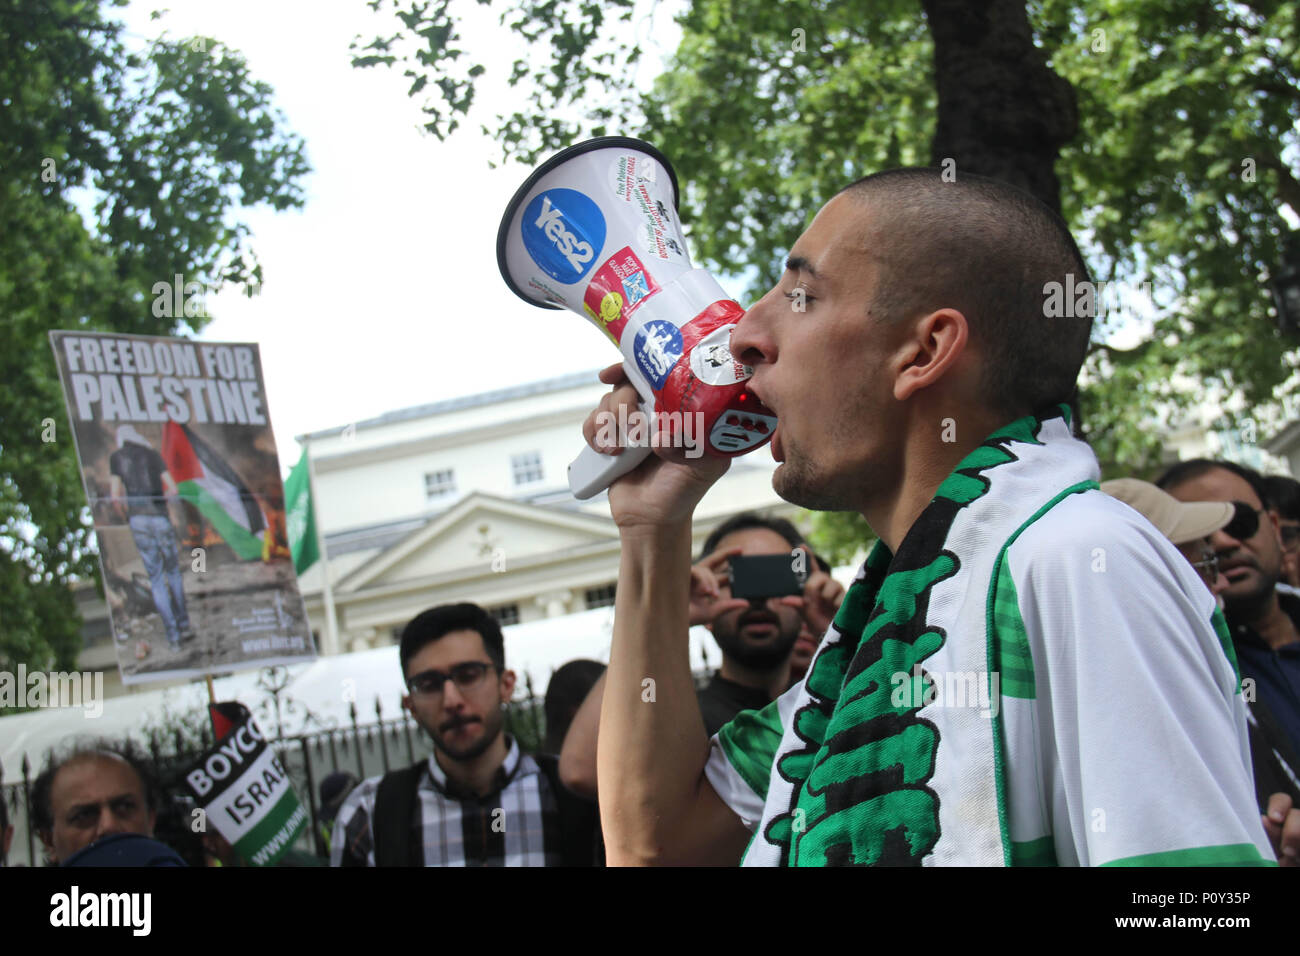 London, UK - 10 June 2018: A Protestors speaks on a megaphone during the Al Quds Day demonstration outside the Saudi Arabia Embassy for Al Quds Day on 10 June 2018. The annual event held on the last Friday of Ramadan that was initiated in 1979 to express support for the Palestinians and oppose Zionism and Israel. Credit: David Mbiyu - Stock Image